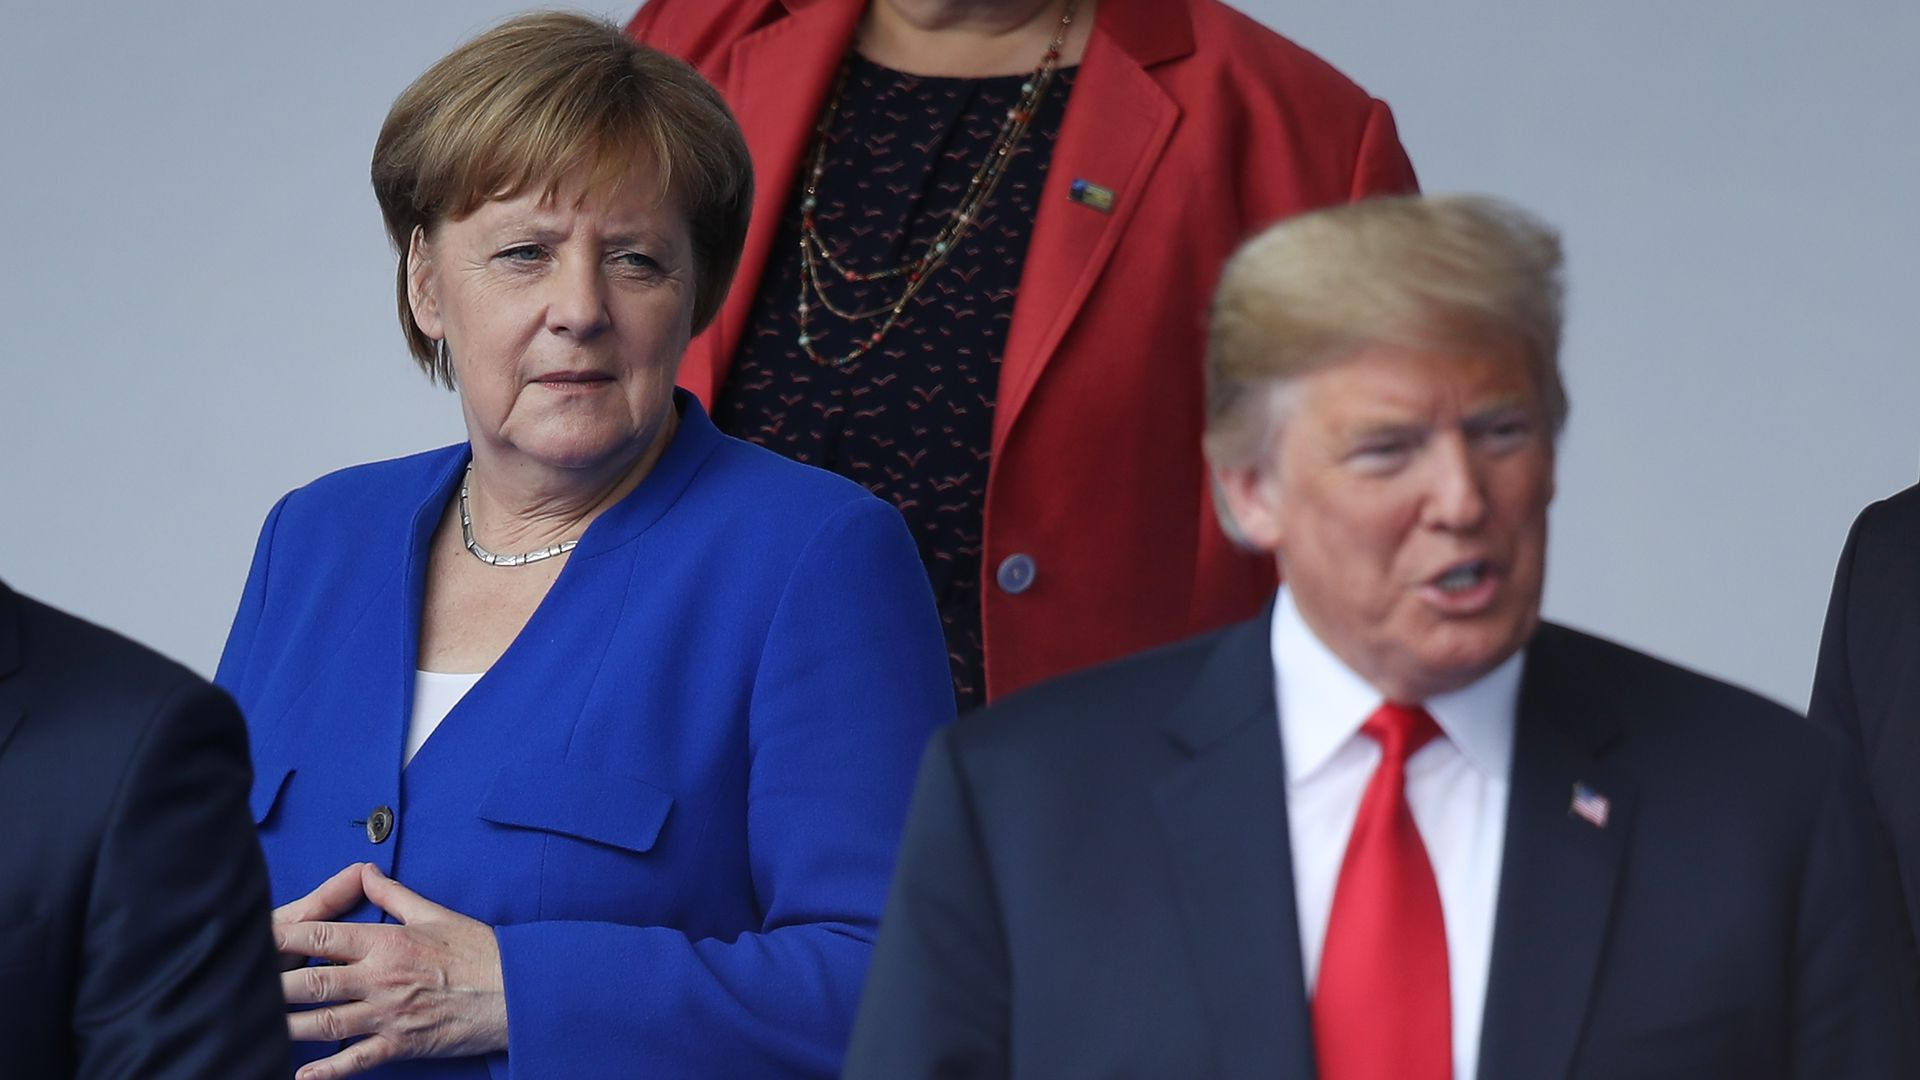 Angela Merkel looking at Donald Trump.